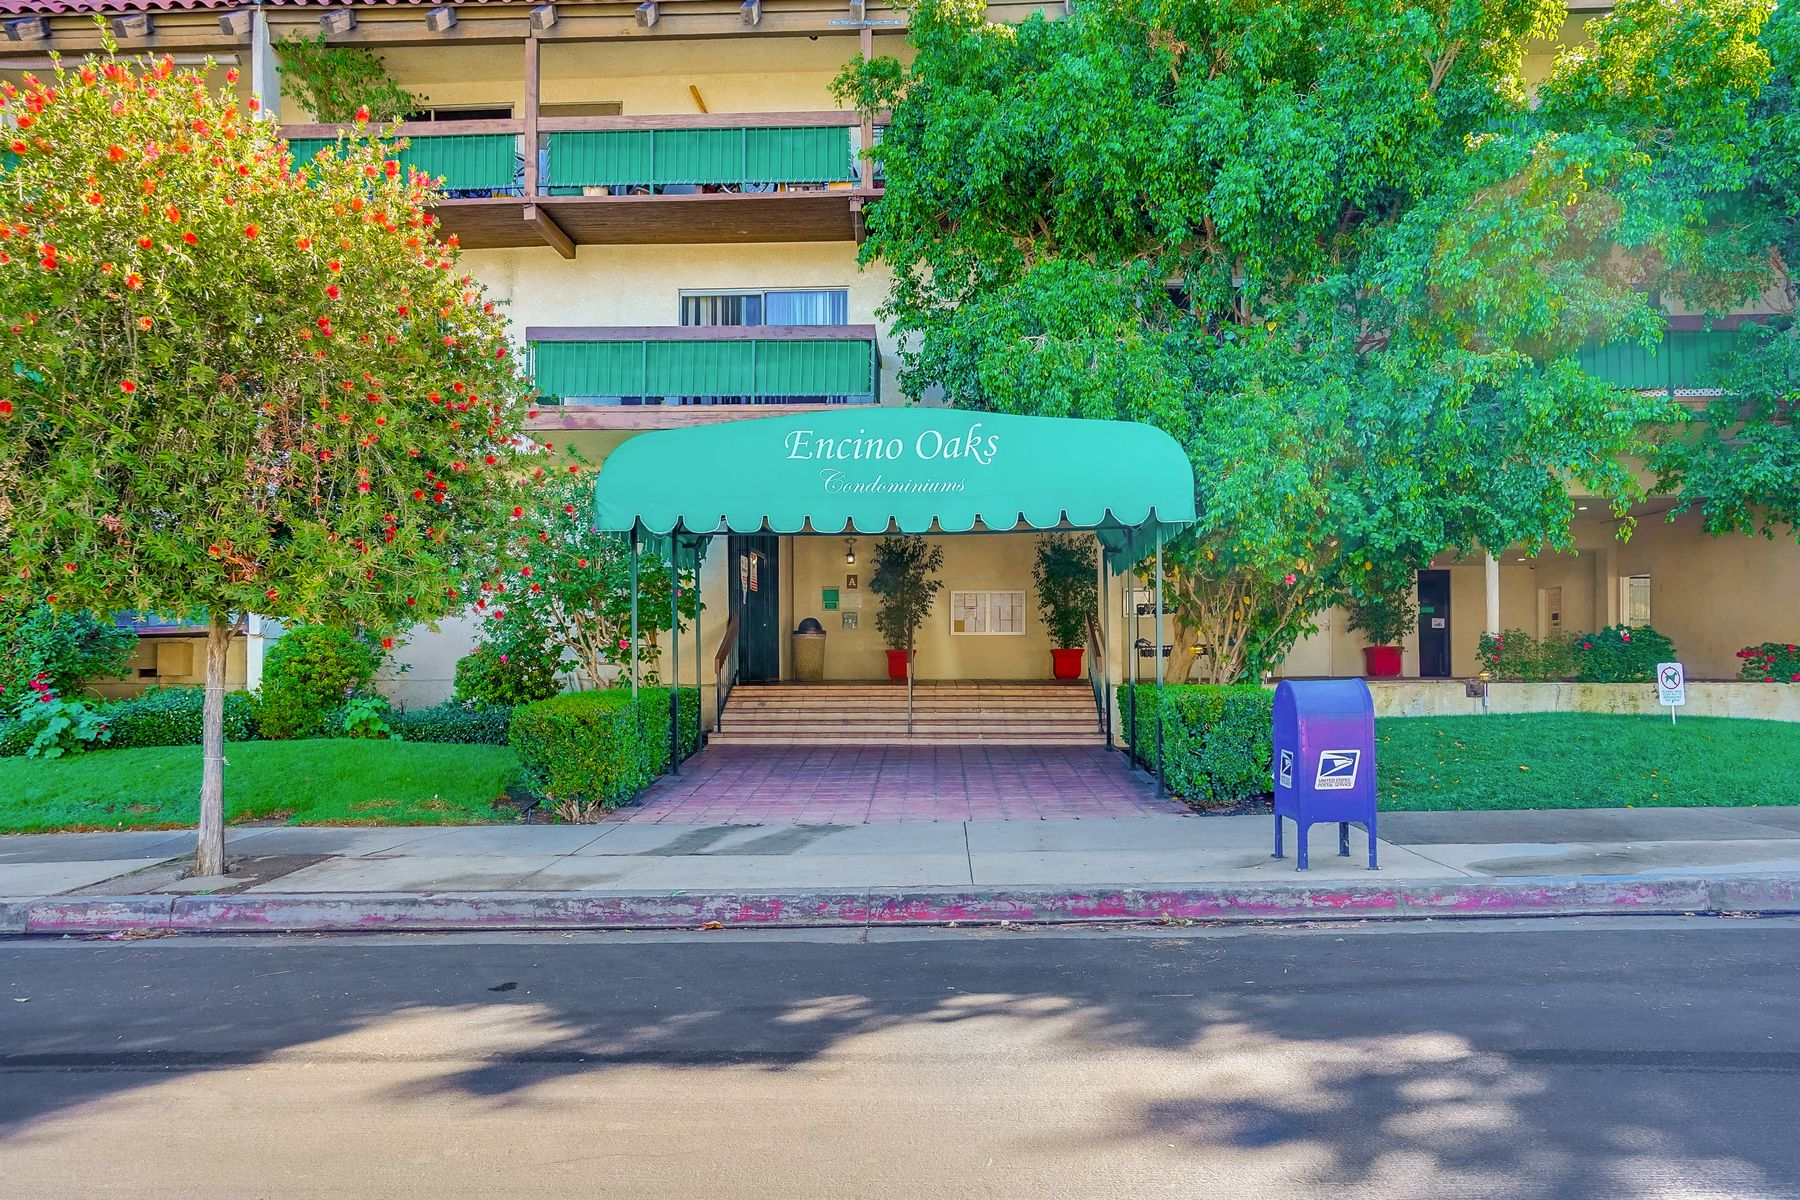 Single Family Homes for Sale at 5460 White Oak Ave Unit A335 Encino, California 91316 United States